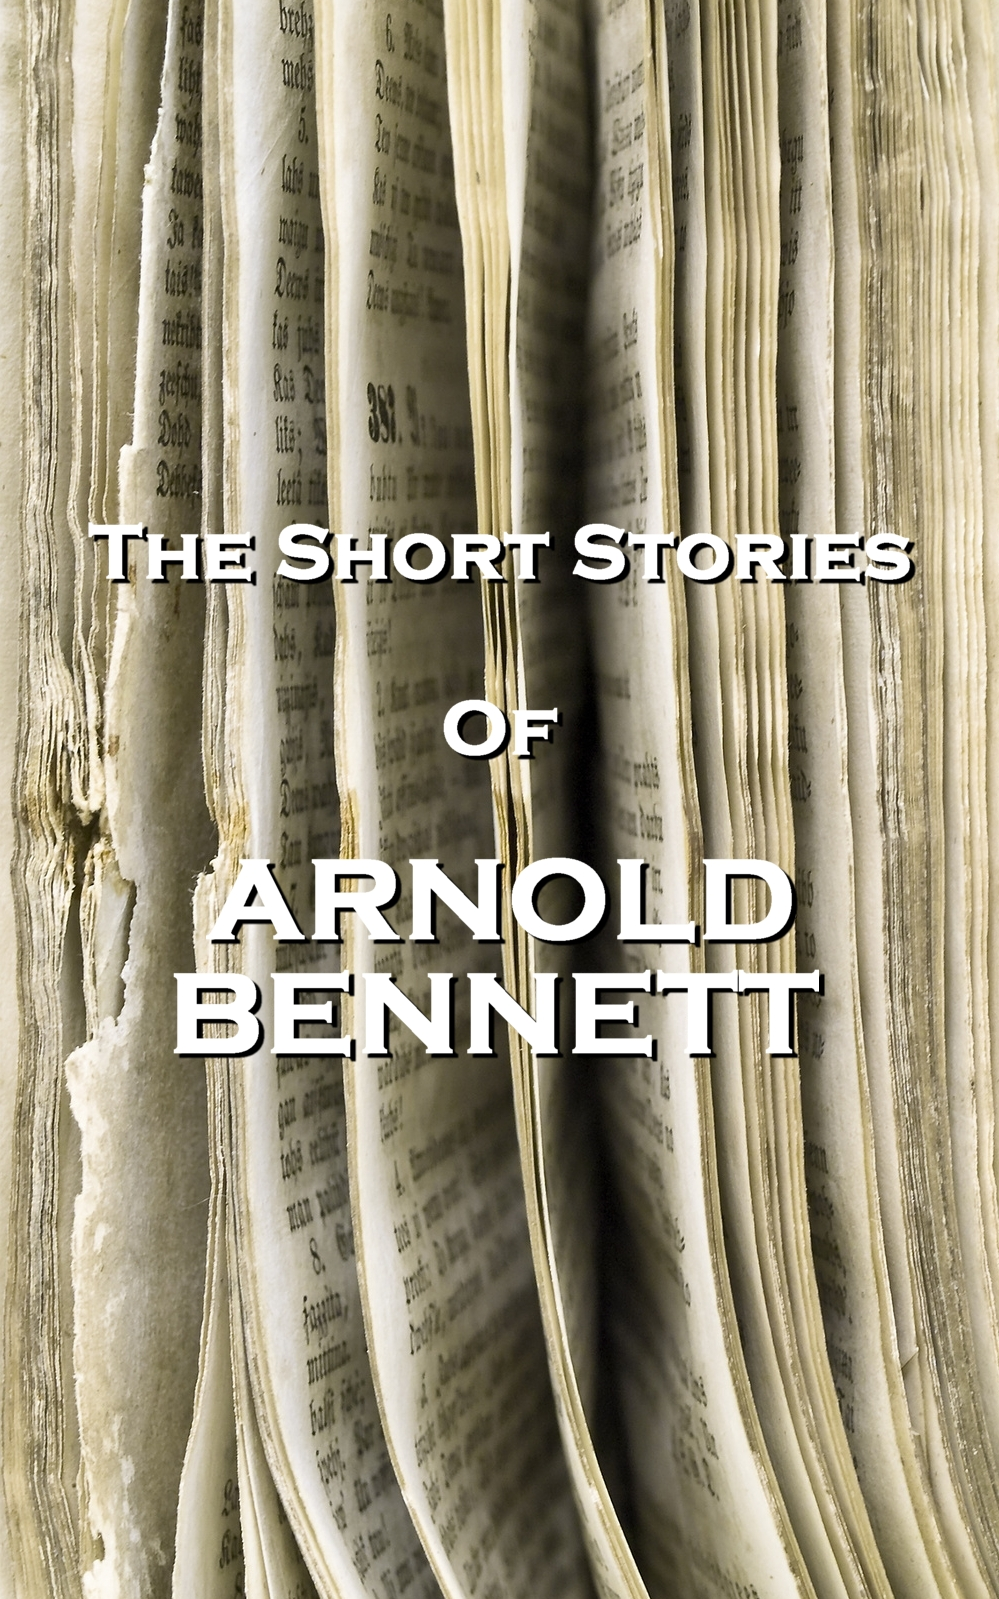 The Short Stories Of Arnold Bennett